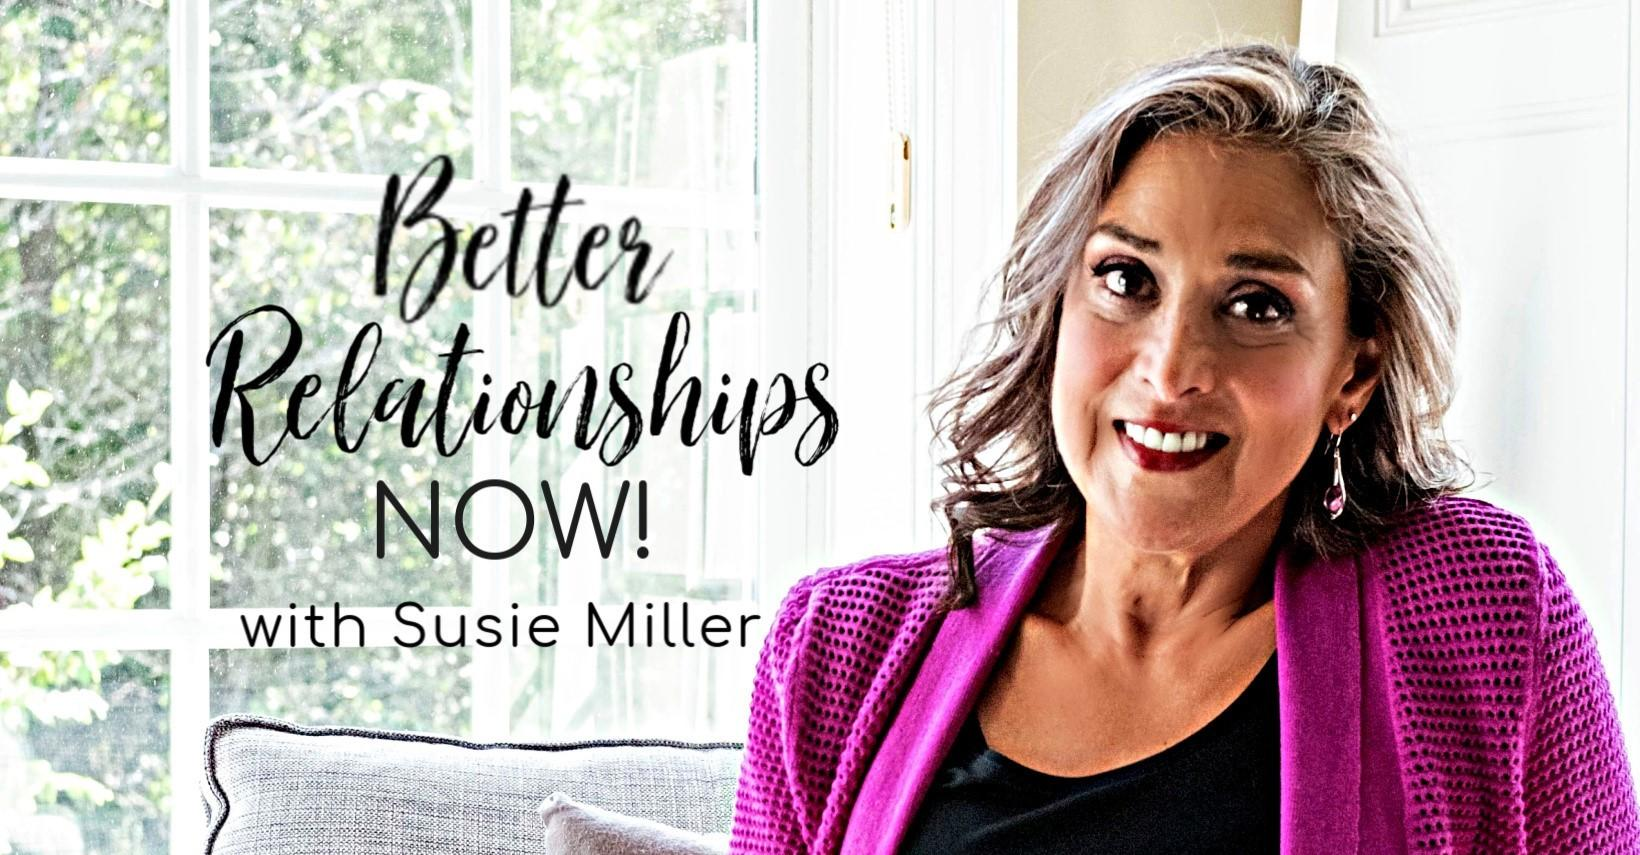 vM0CvvRkRG2m4sc8irdW_Better_Relationships_with_Susie_Facebook_Group_Cover